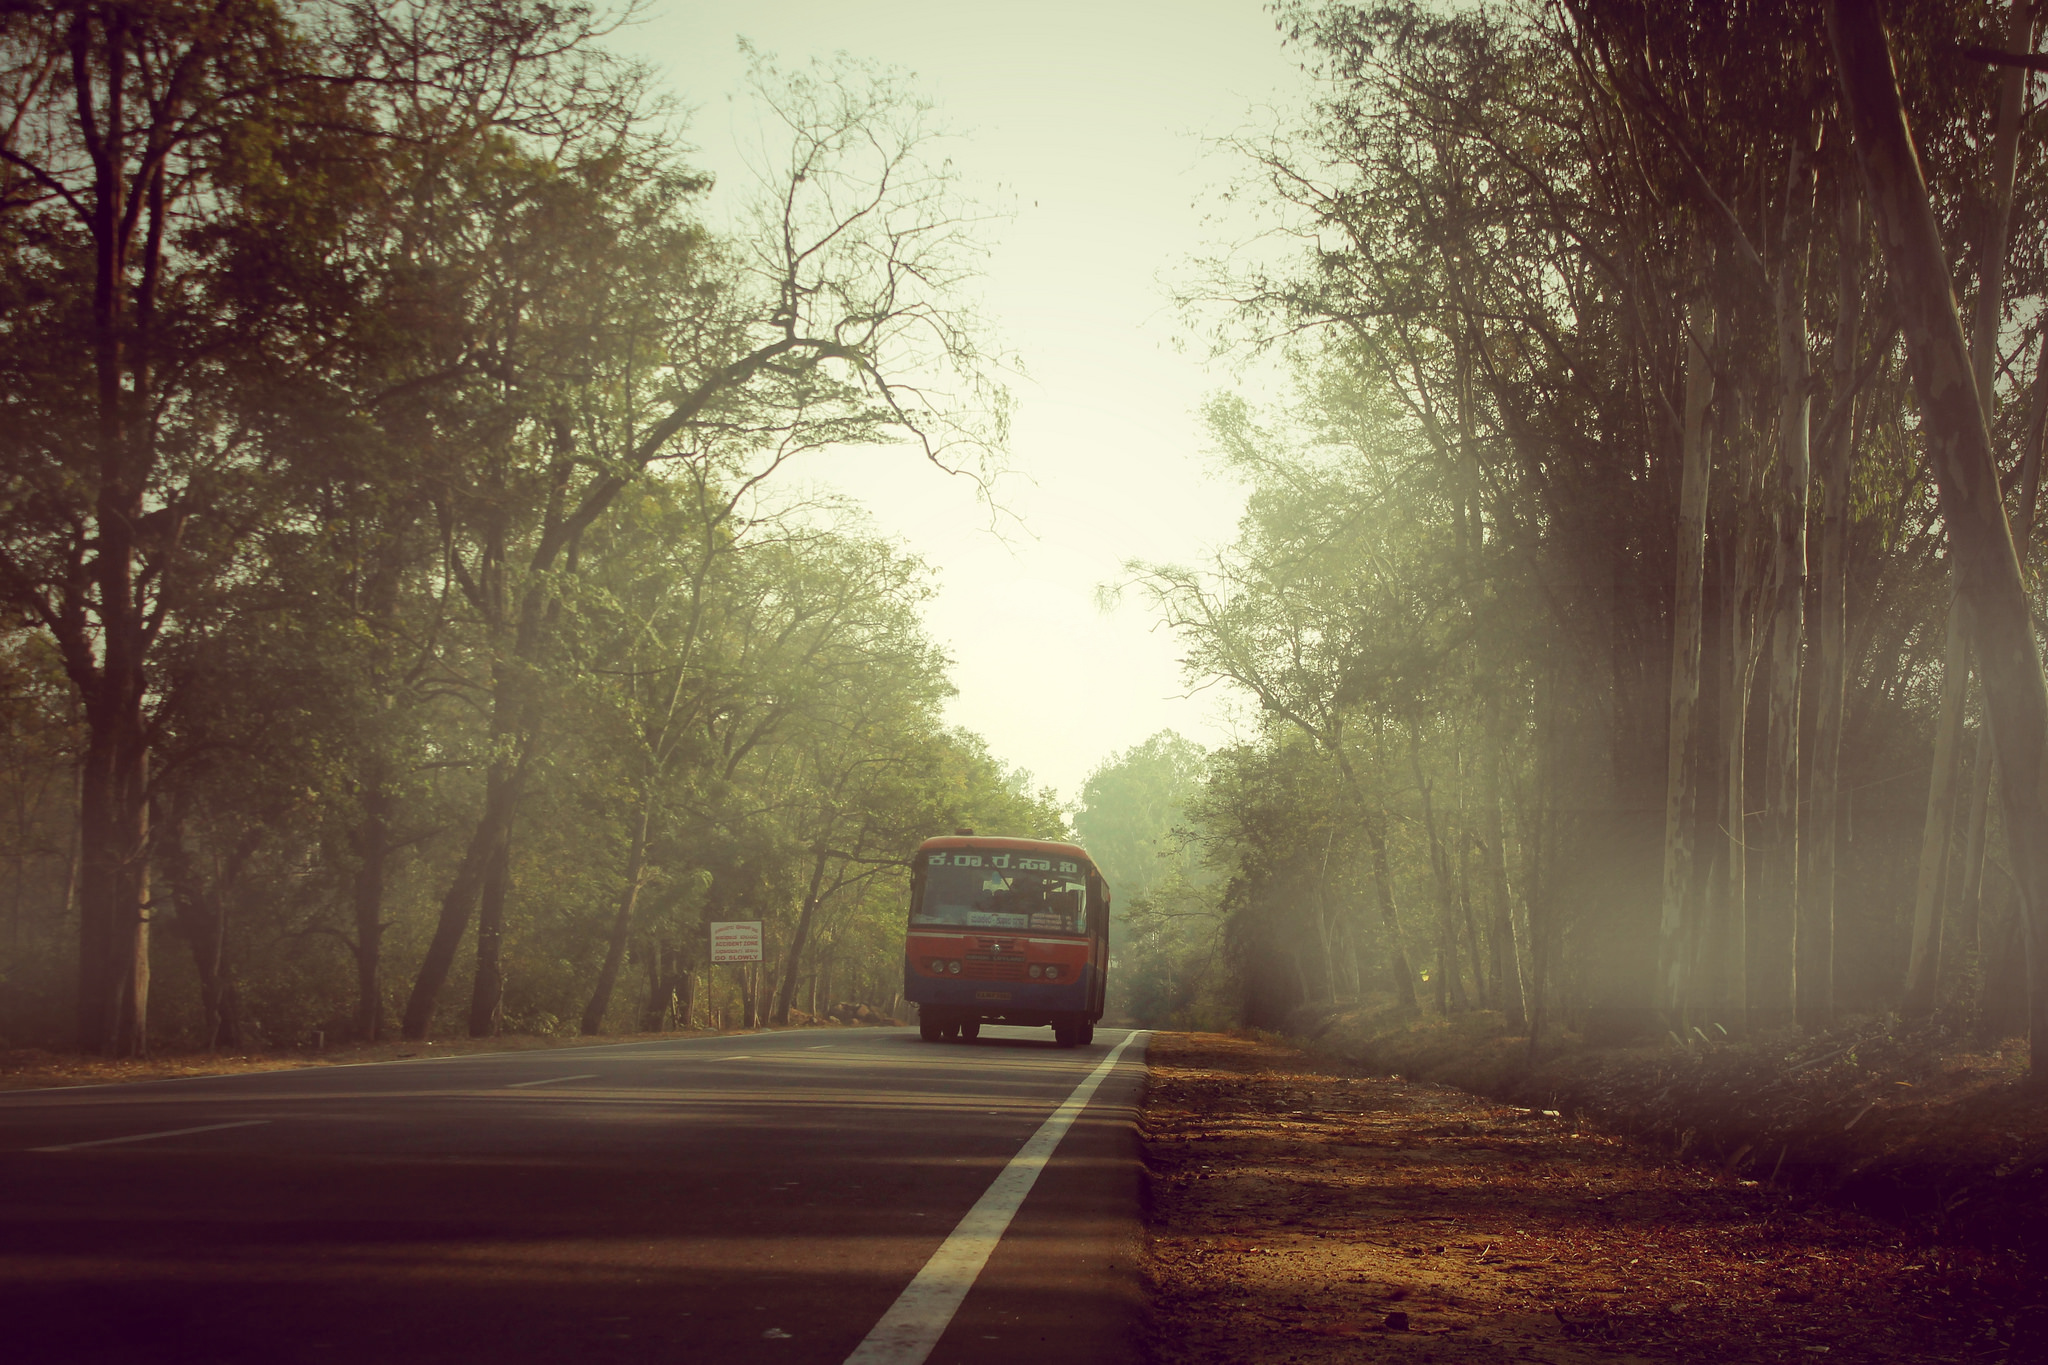 Holiday in Coorg